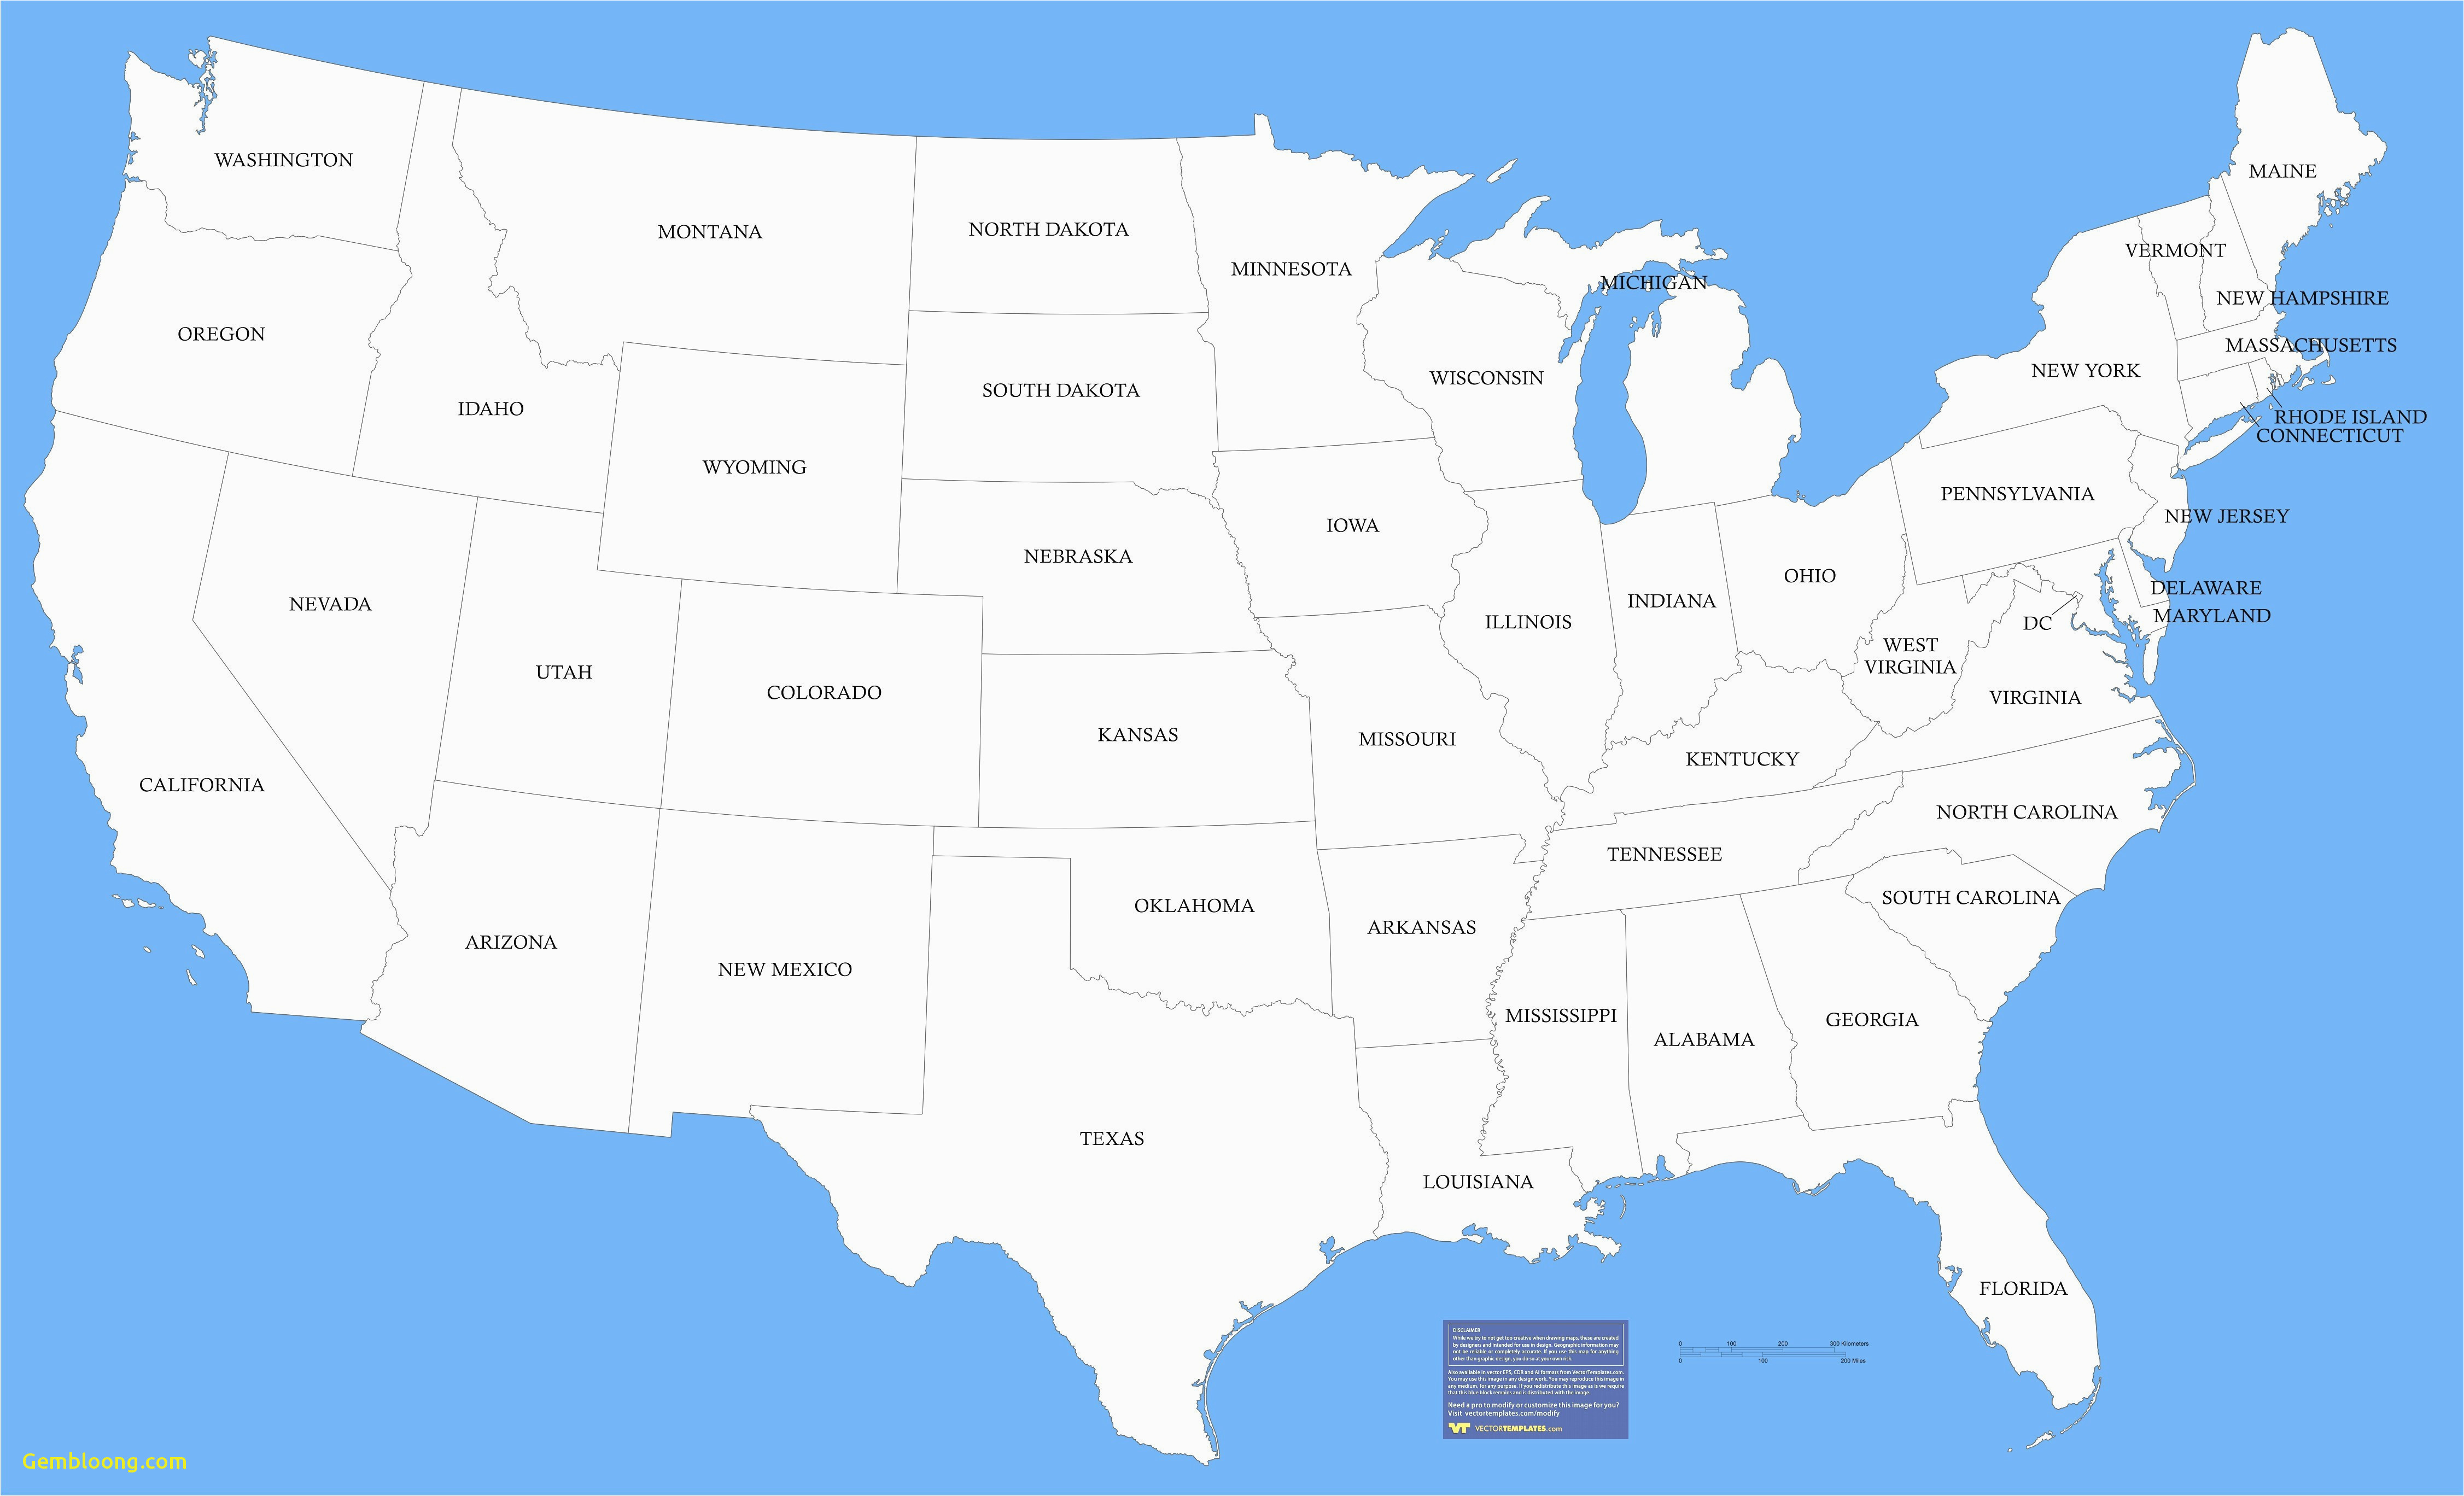 map of usa and canada image of usa map